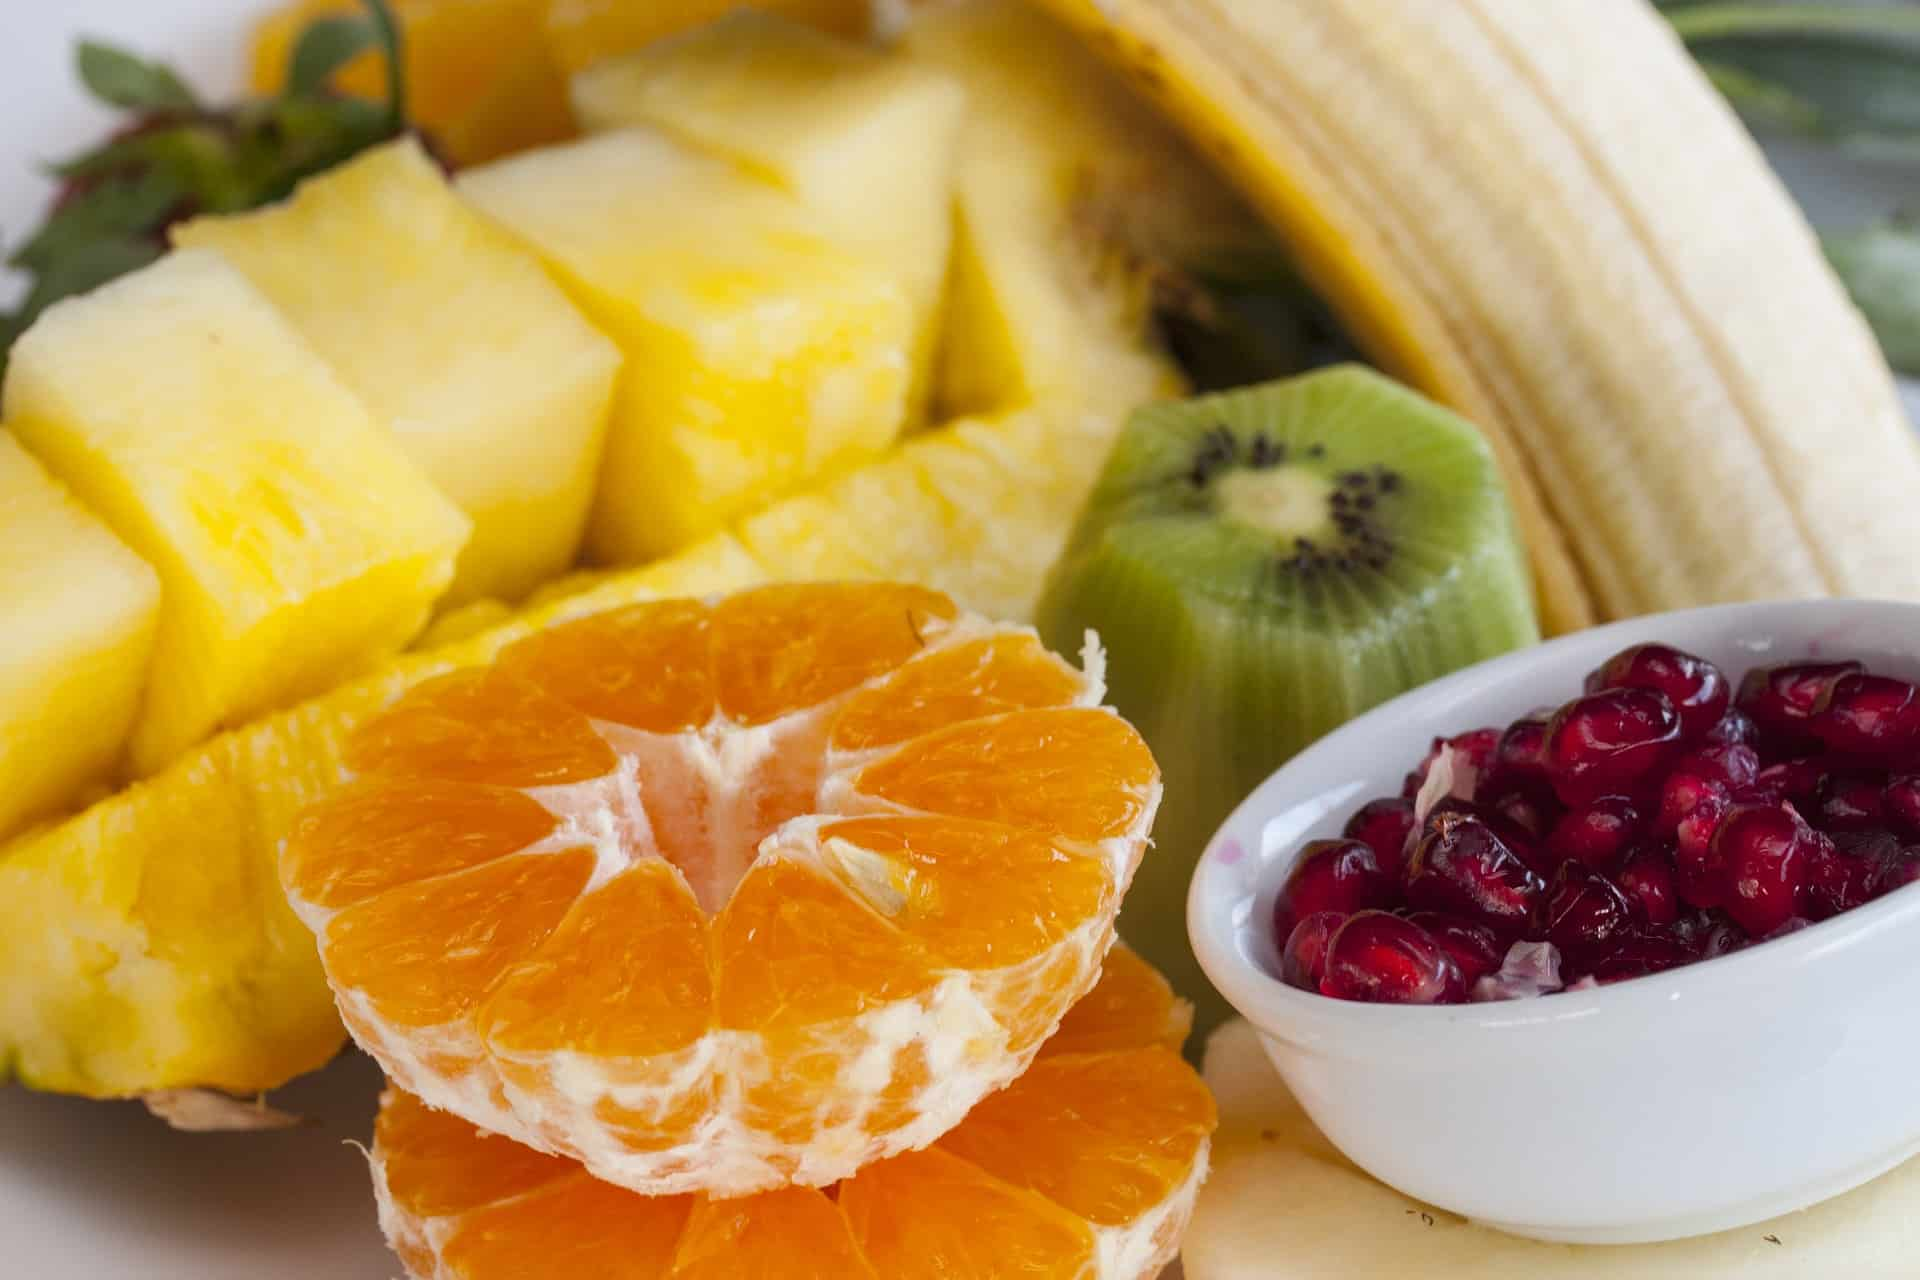 https://pixabay.com/en/fruit-pineapple-pomegranate-banana-2359703/